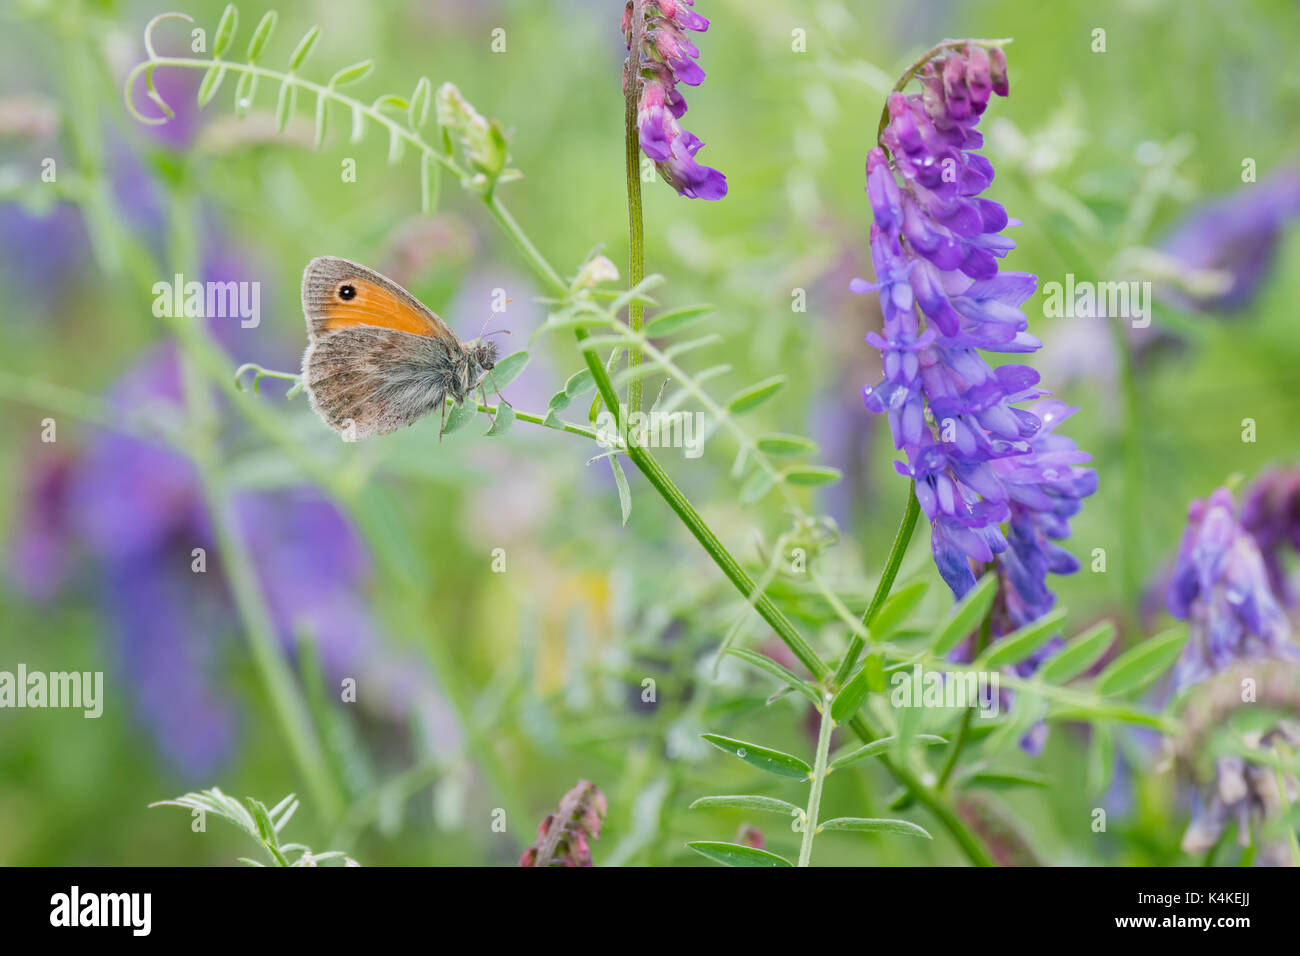 Small heath (Coenonympha pamphilus) on clover (Trifolium), Hesse, Germany - Stock Image